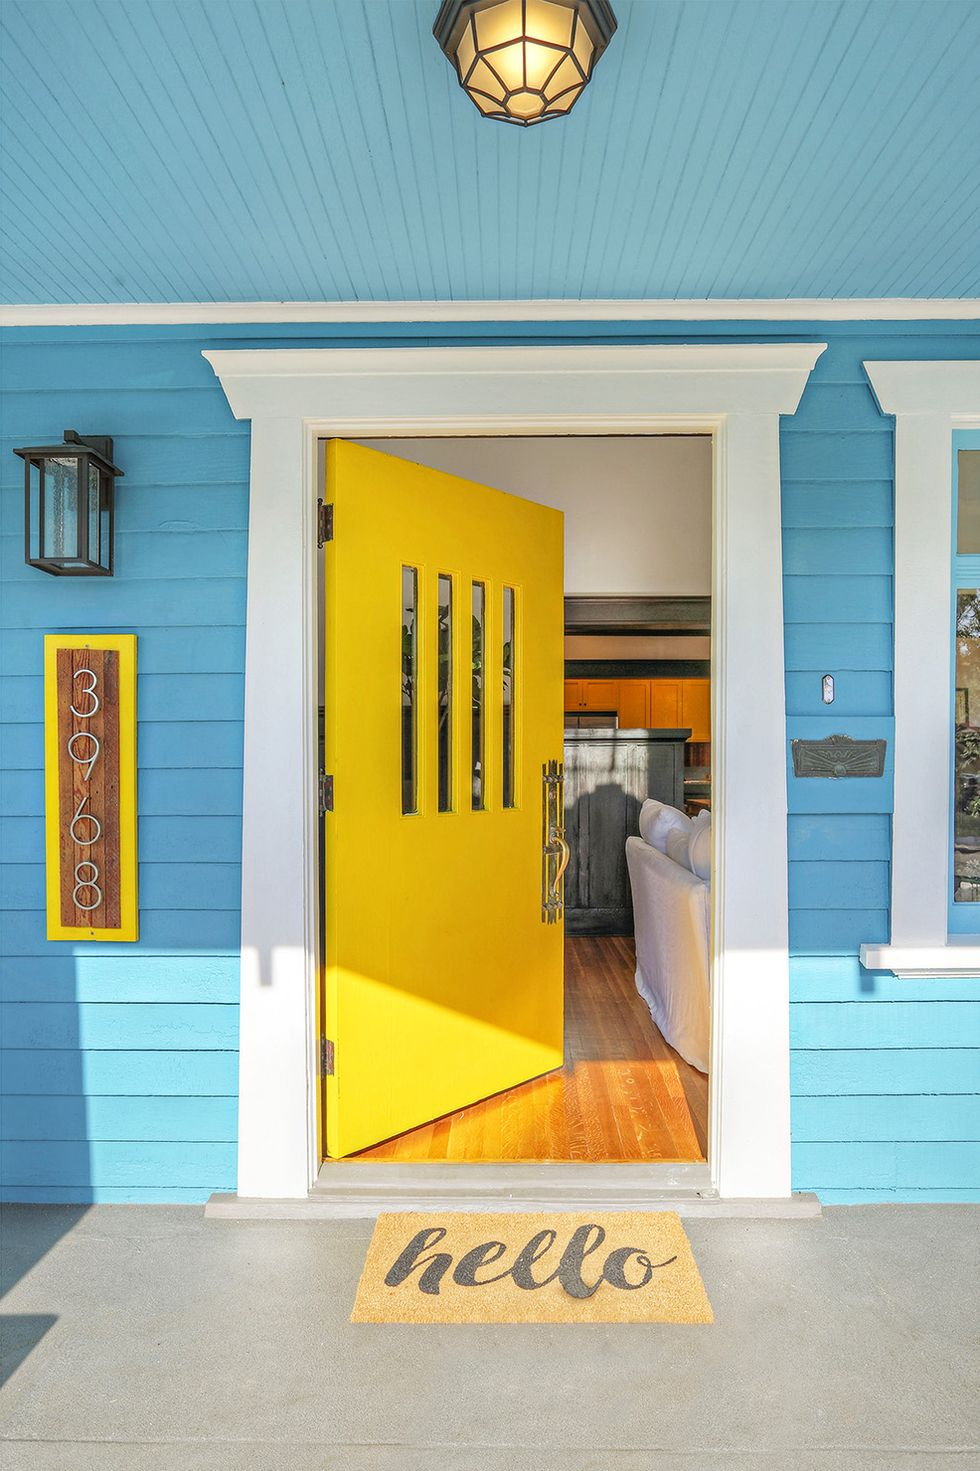 Cabin Fever Projects: Eight of our top 10 is Summer Sun Valspar 3007-2B. Moreover the door is primed with white and the siding is bright blue.